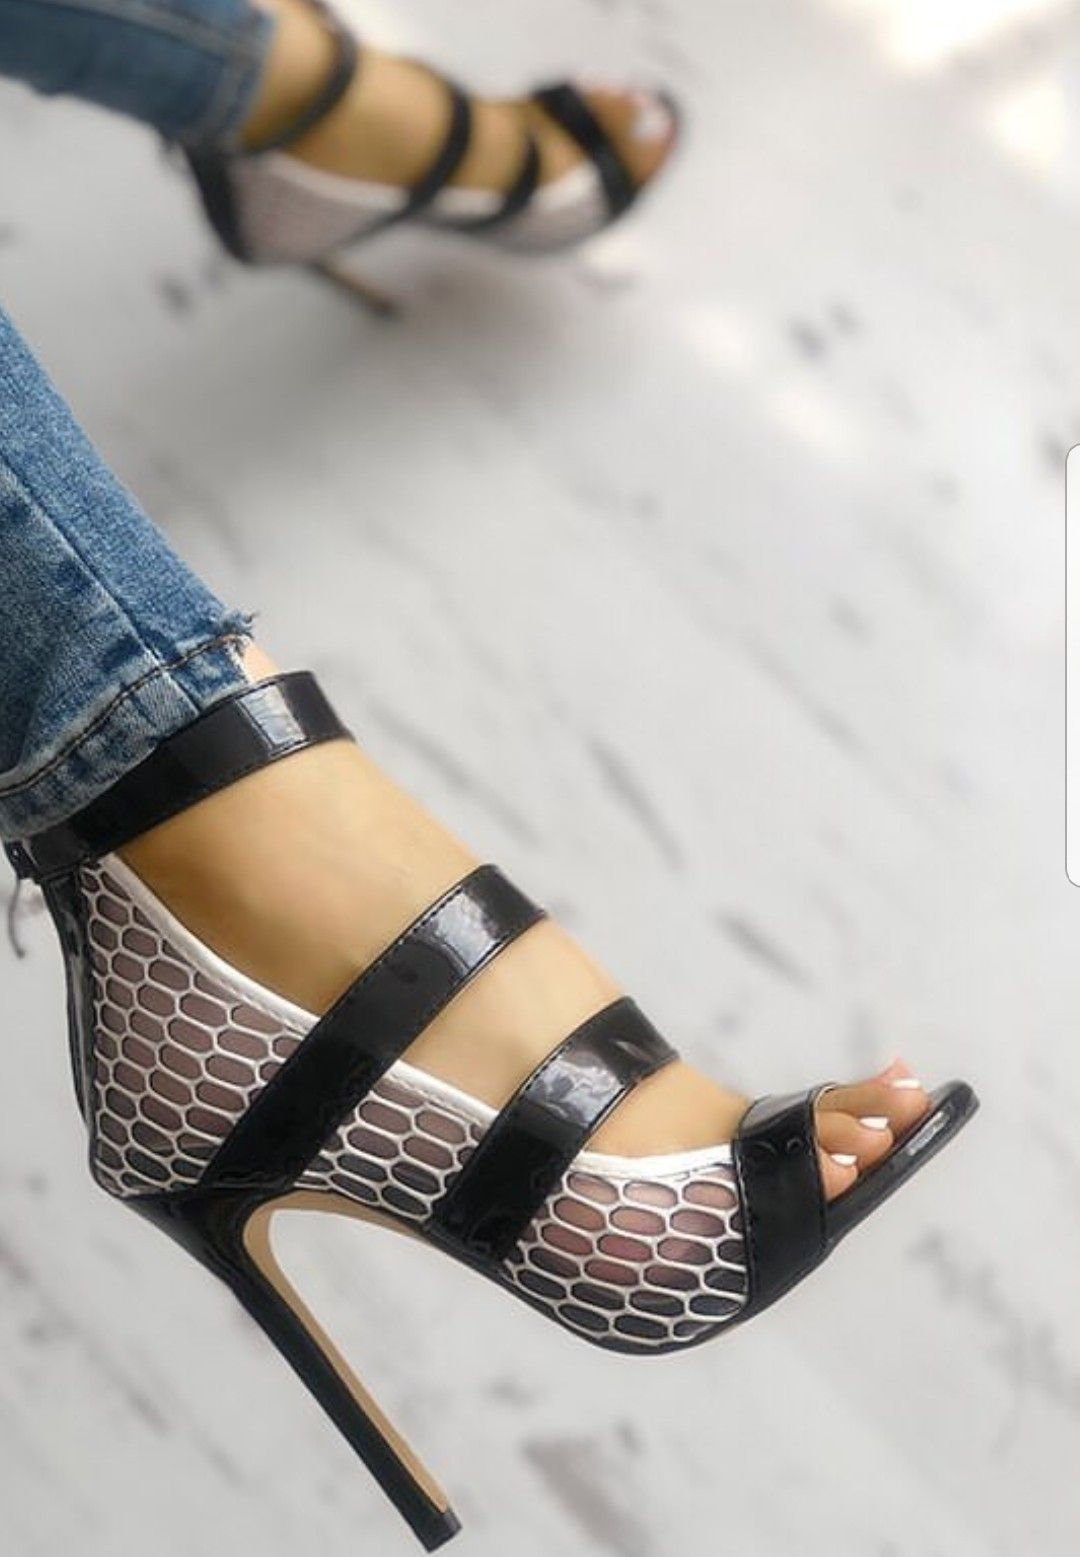 e15f2ea9f09b Find this Pin and more on Heelicious by Ty McClain. Sandalias De Tacón  Alto